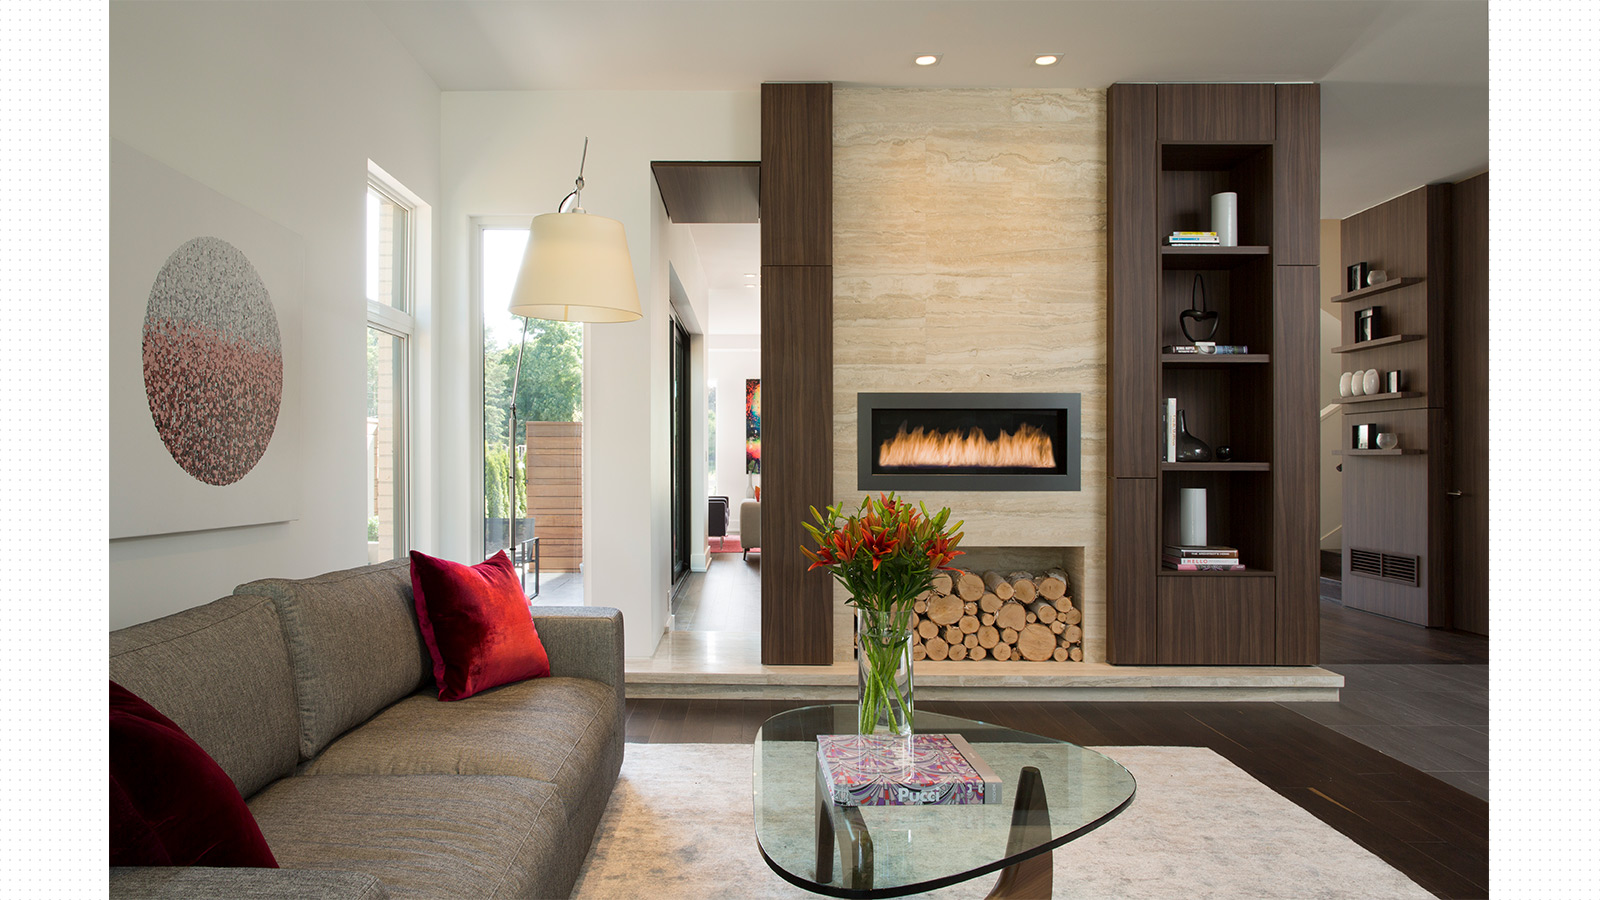 Living Room and Fireplace Details